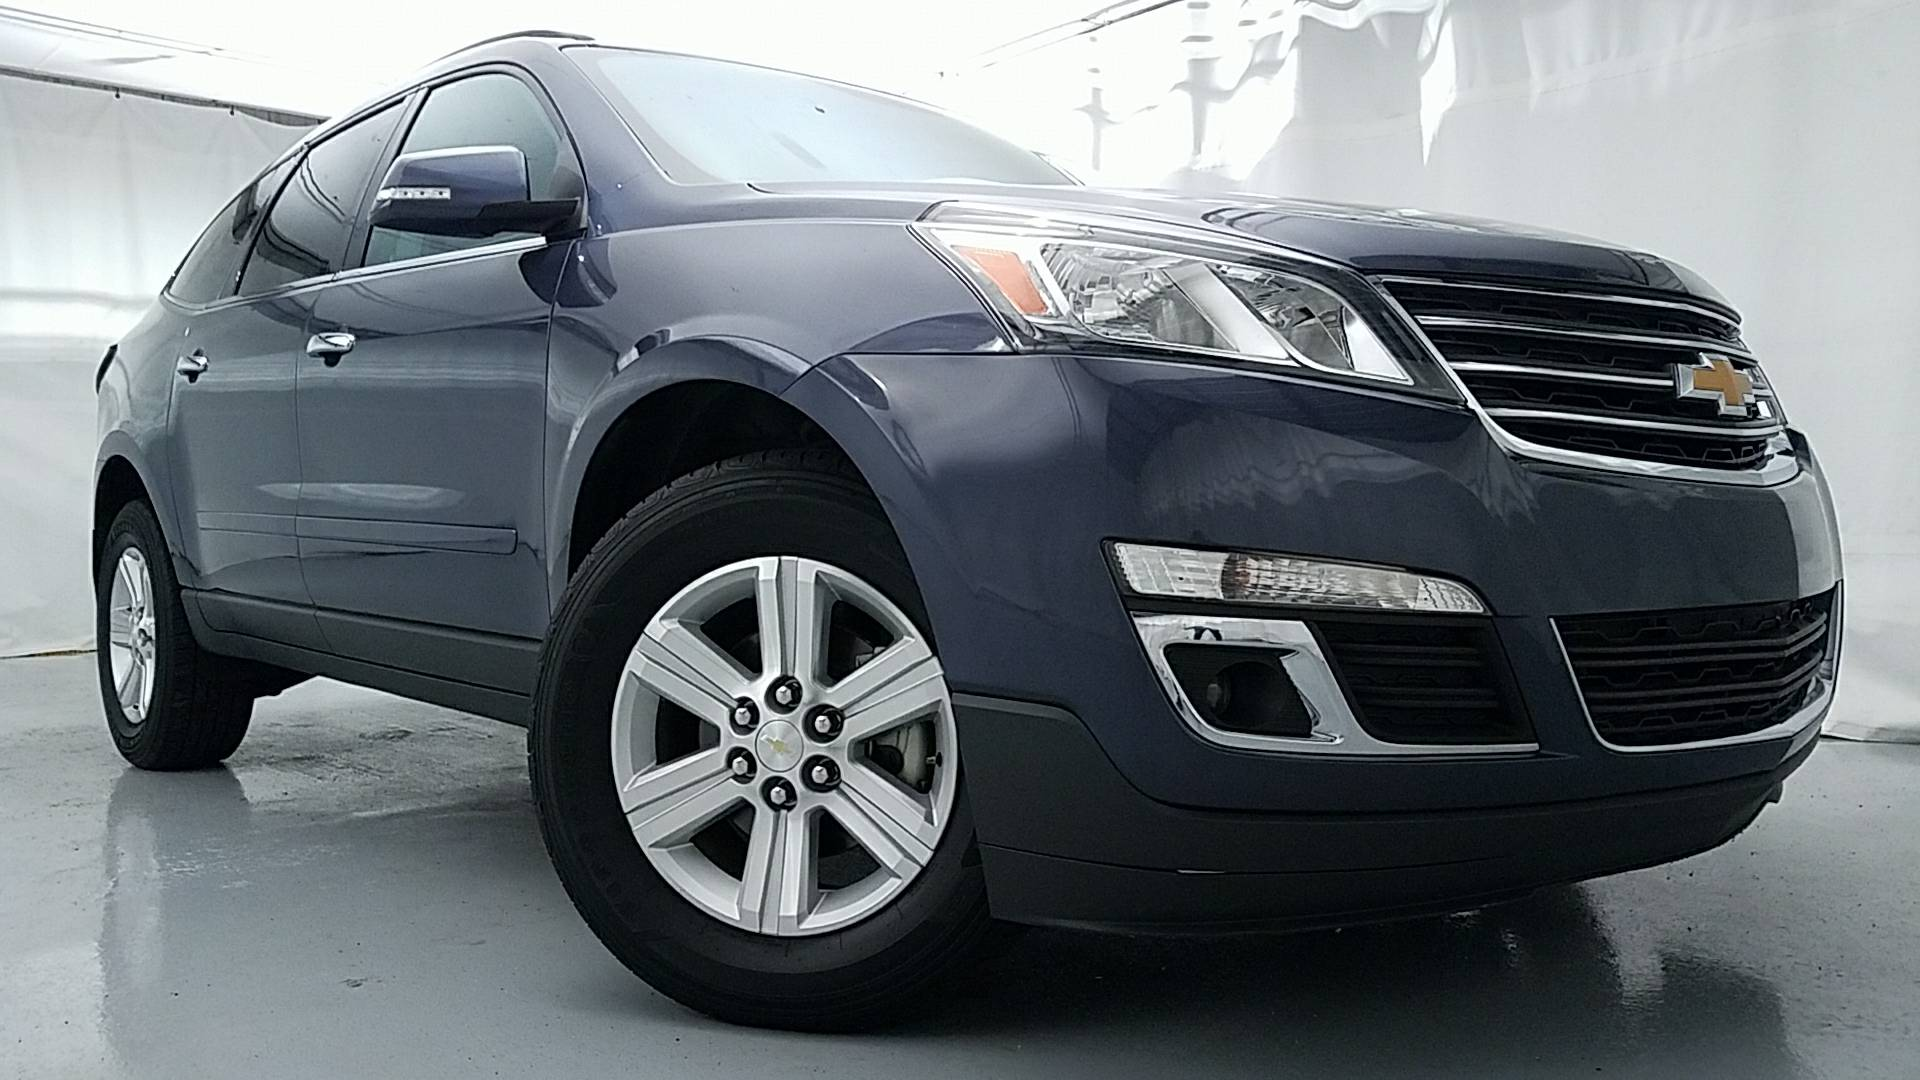 1GNKRGKD6EJ194145.dp.1.20171016161036 Interesting Info About Chevy Traverse Ltz with Fabulous Pictures Cars Review